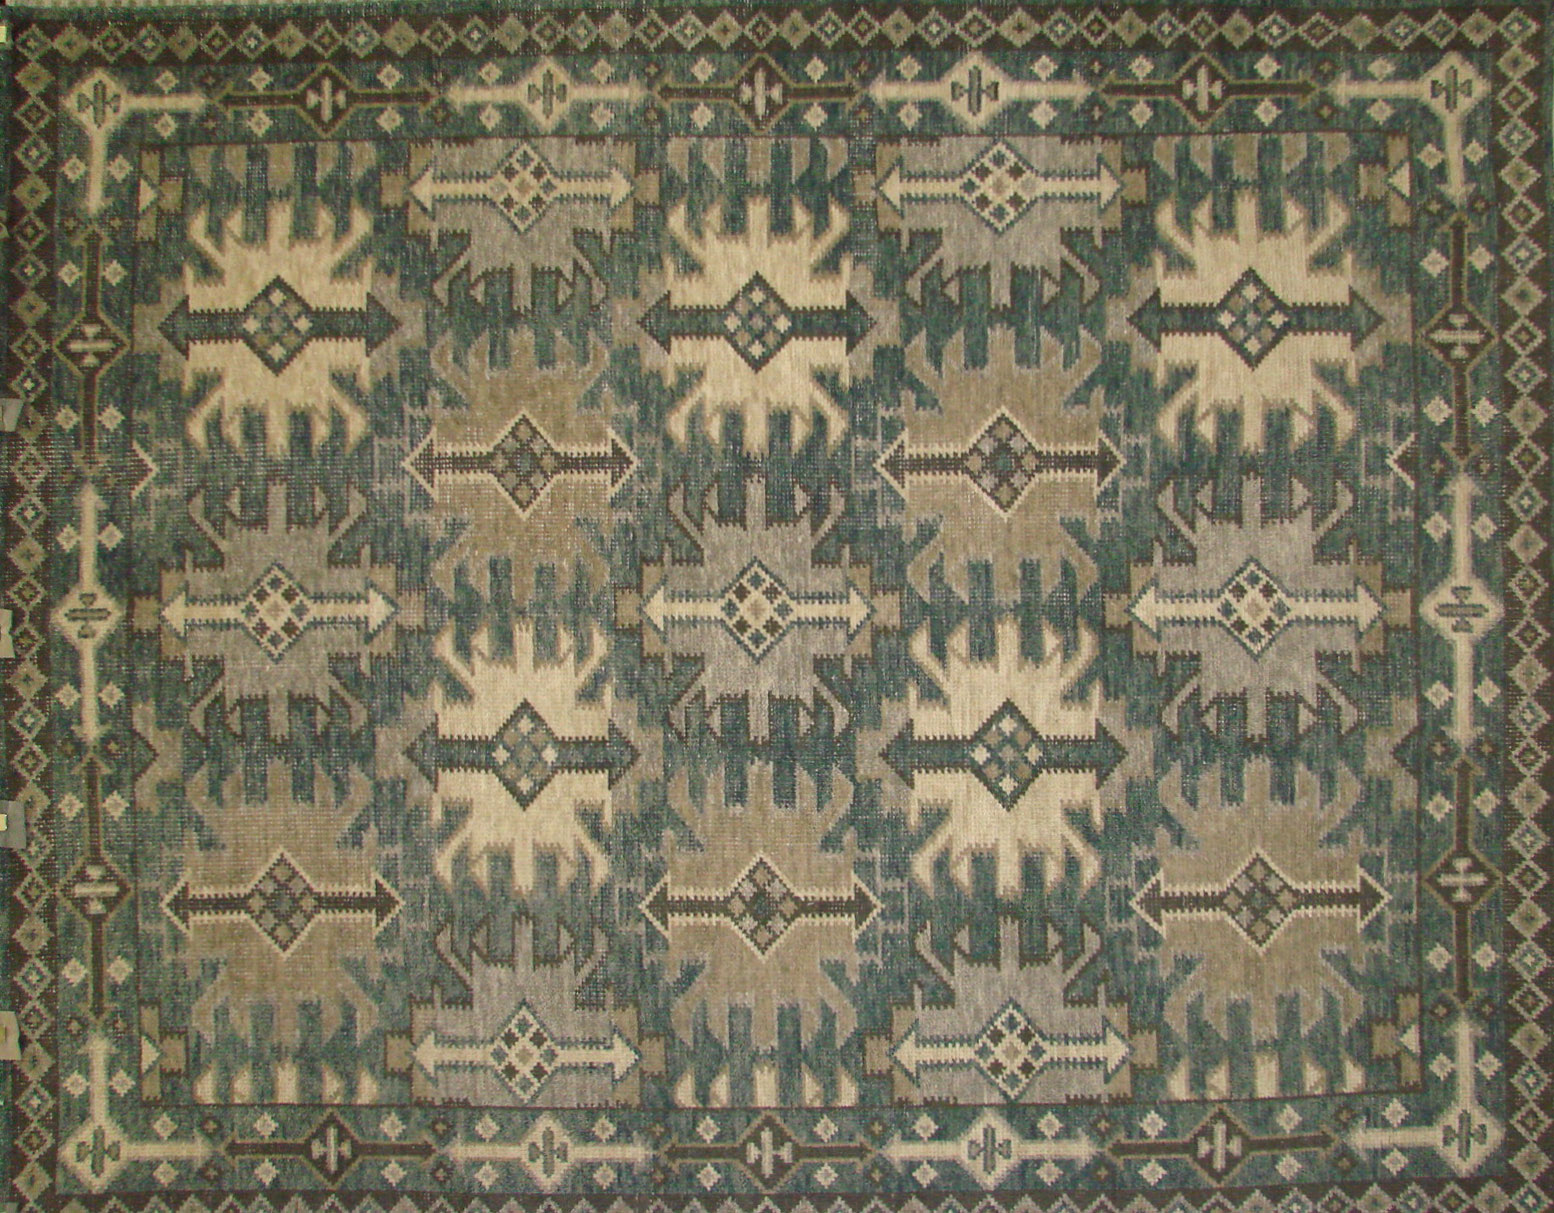 8x10 Oushak Hand Knotted Wool Area Rug - MR021917